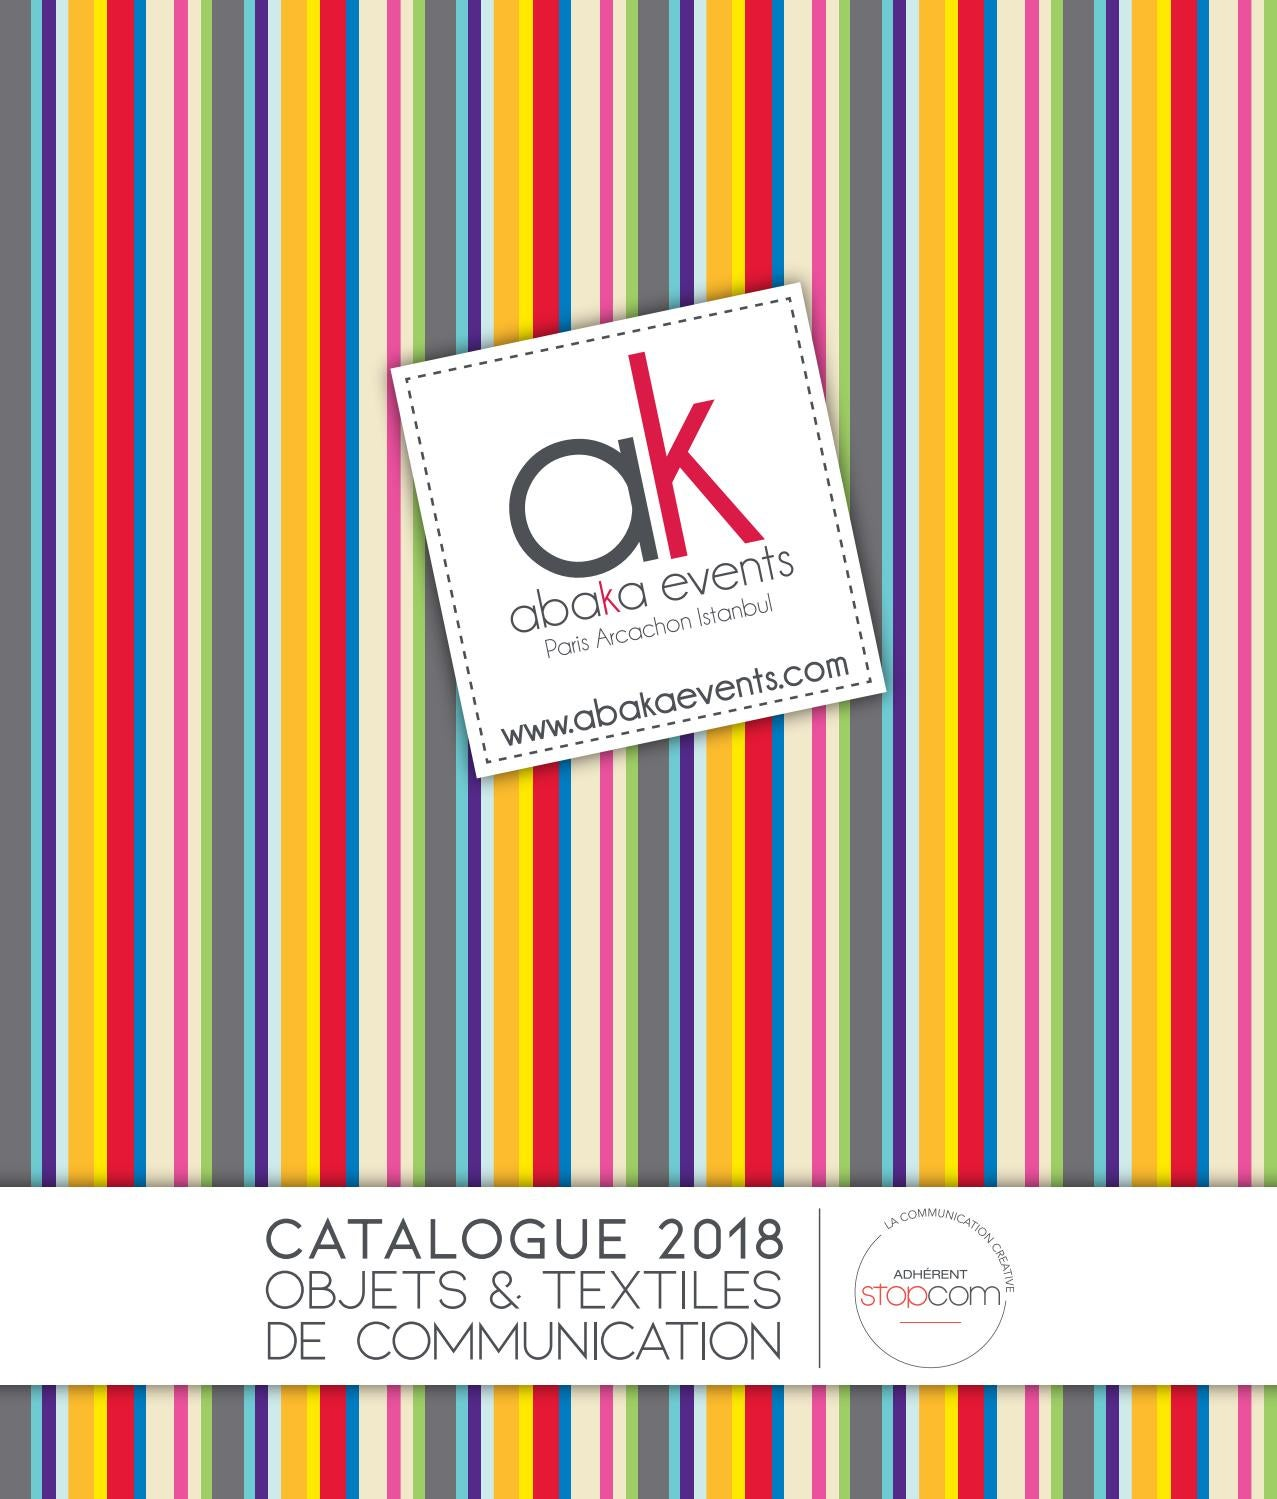 Abaka 2018 by Objectif Goodies - issuu be3a243db1c7